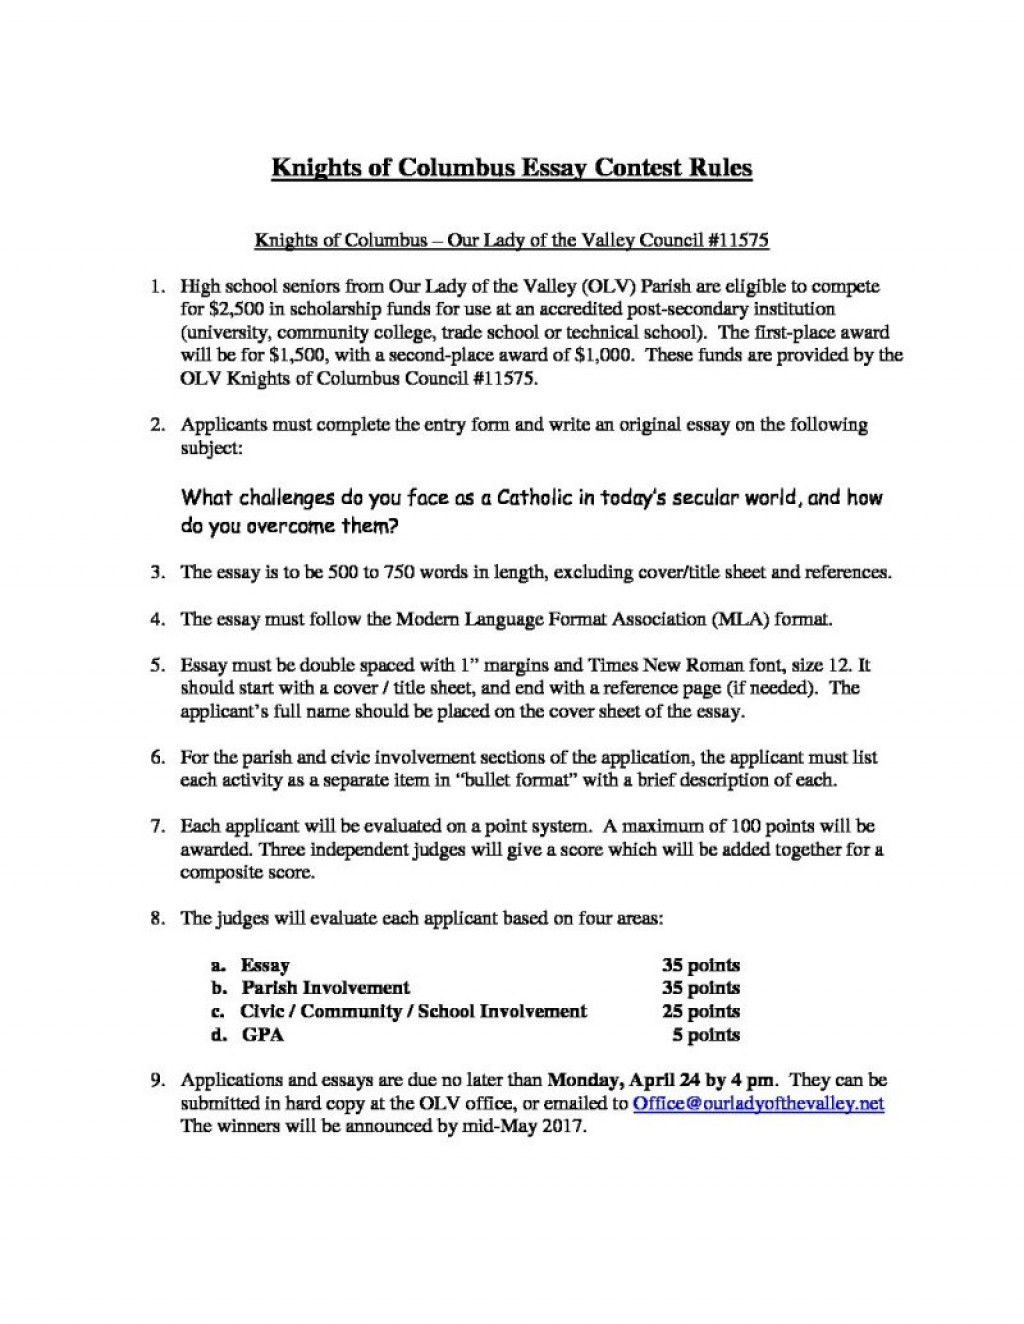 001 Essay Example From Failure To Promise Contest K Of Scholarship Rules And Application Unique Large